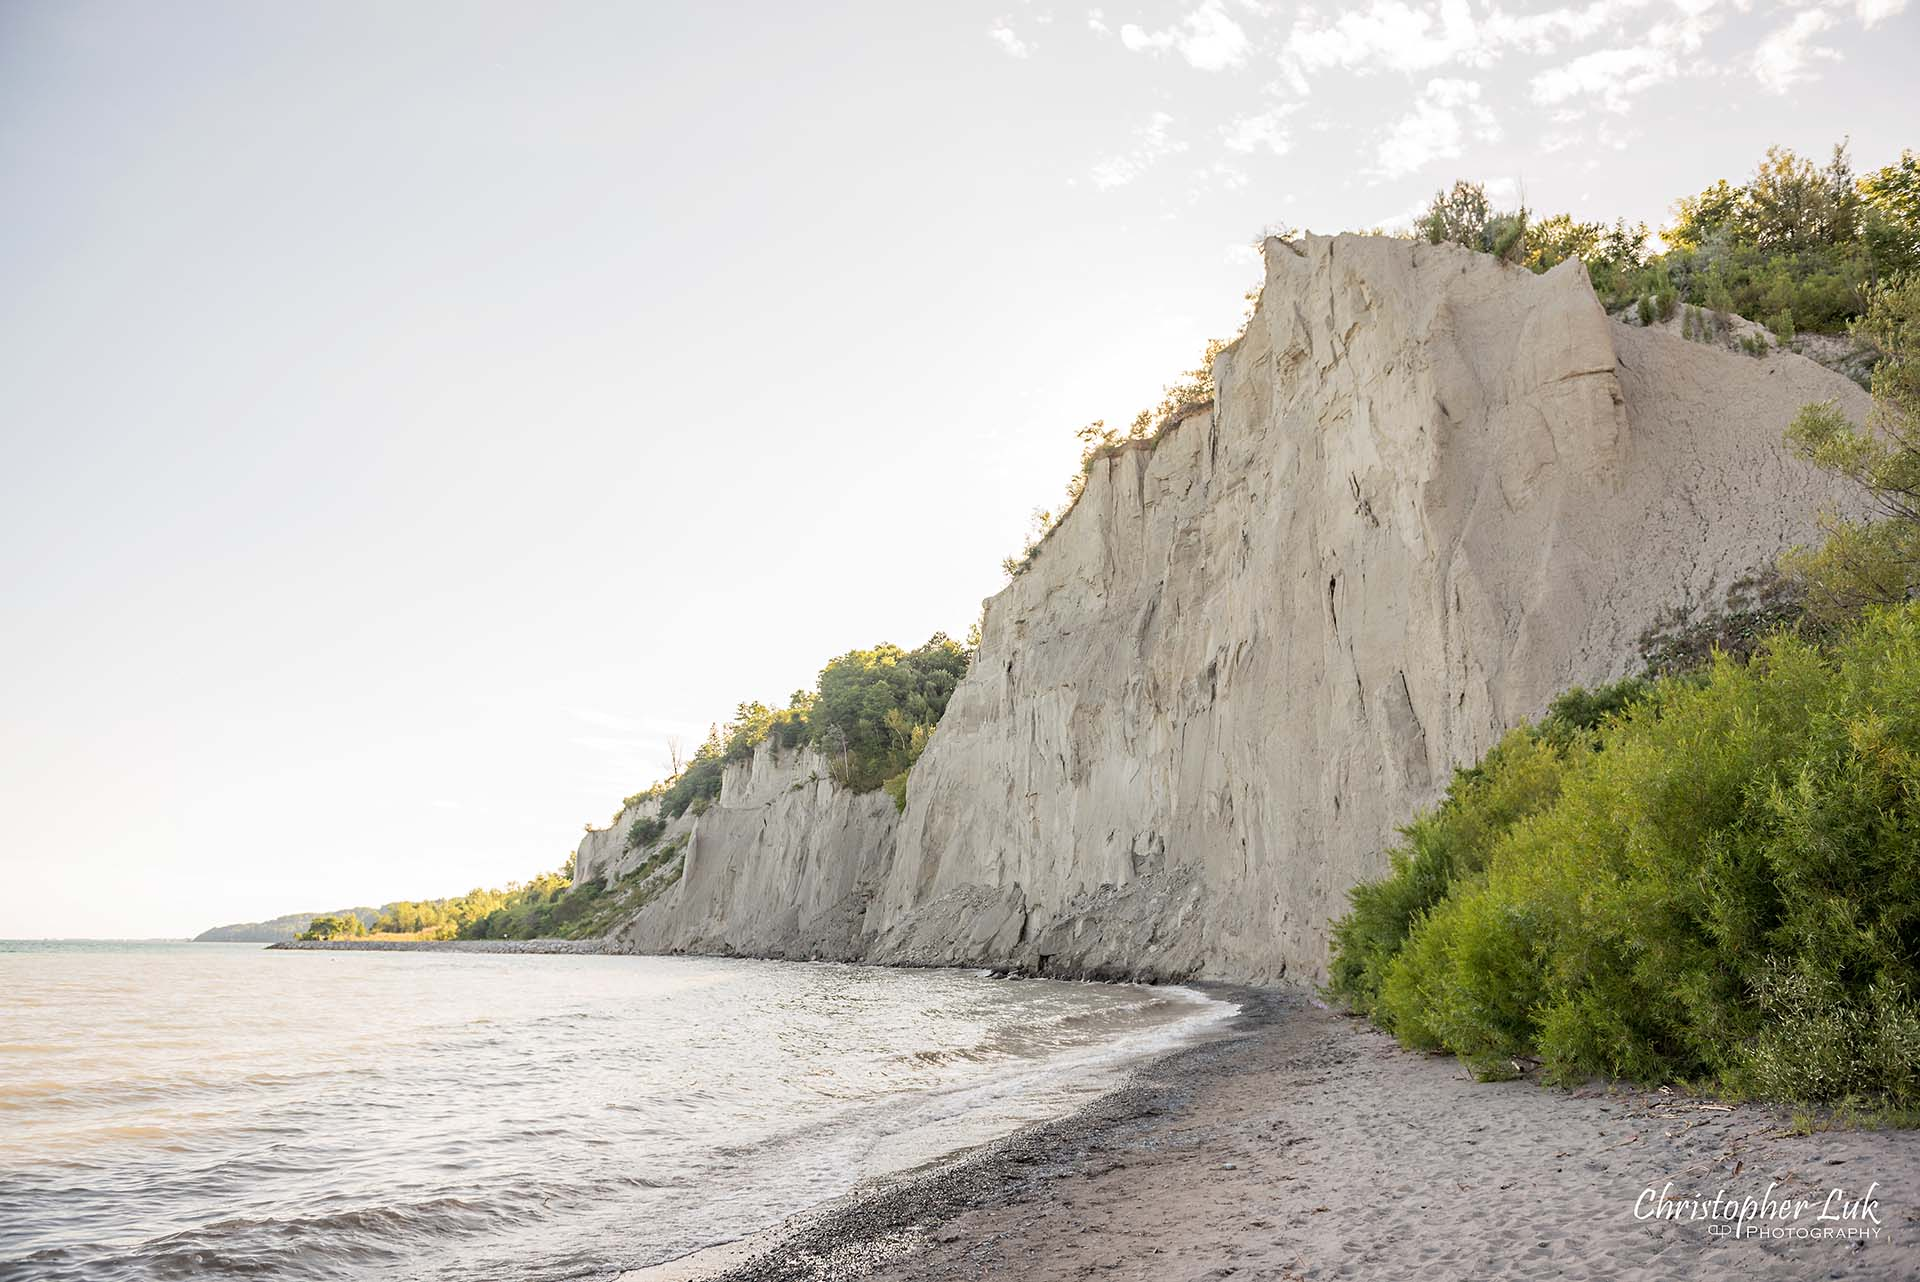 Christopher Luk Toronto Photographer Scarborough Bluffs Beach Park Sunset Surprise Wedding Marriage Engagement Proposal Cliff Stone Rock Face